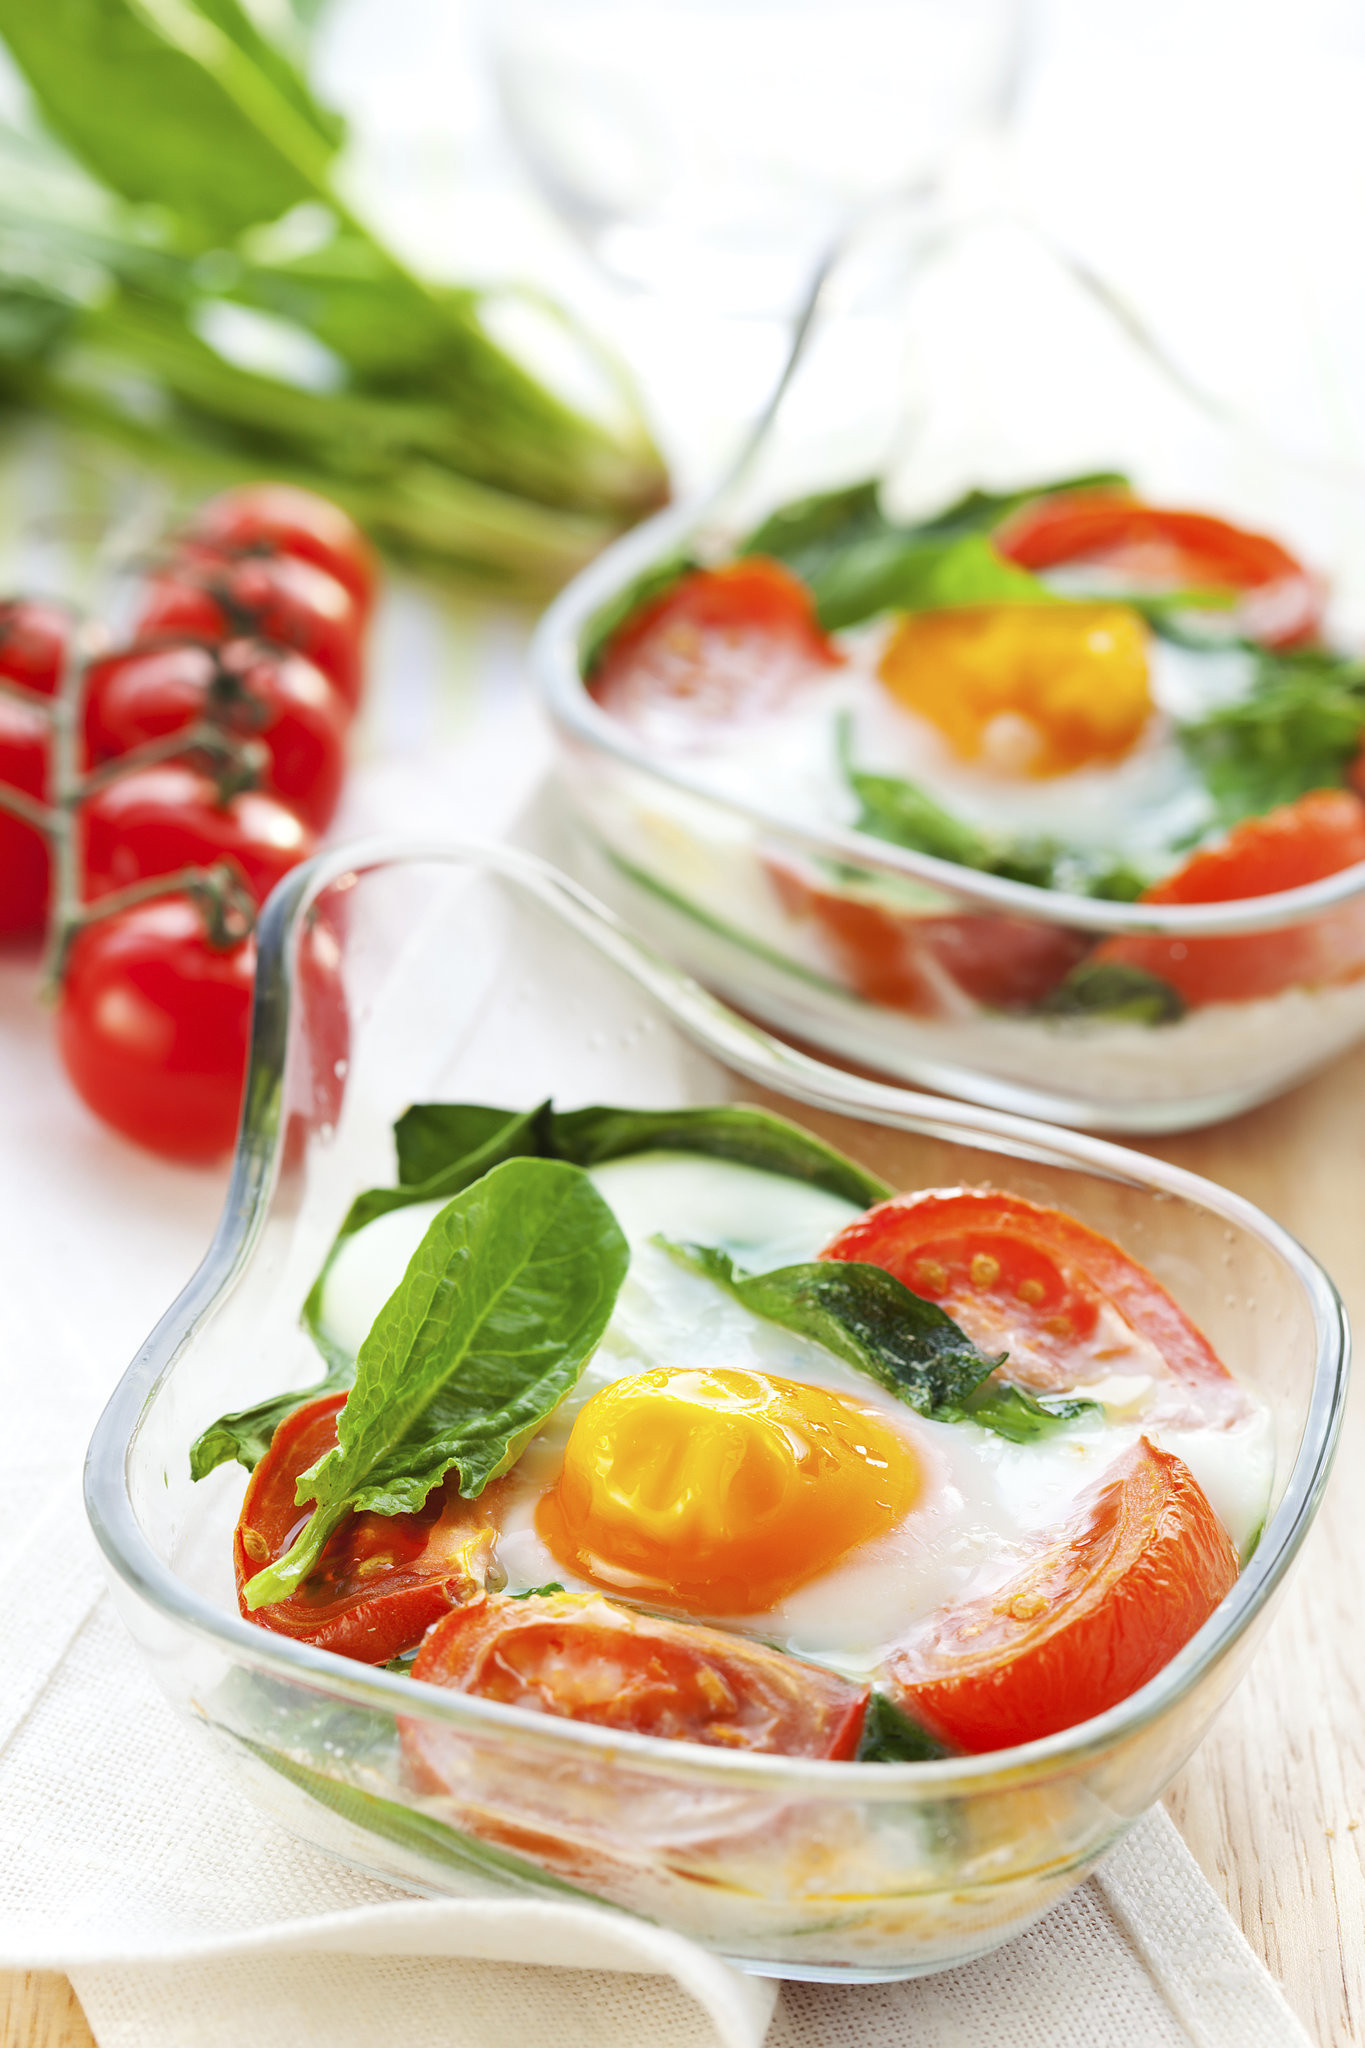 Healthy Breakfast Meat  50 High Protein Breakfasts That Are Healthy And Delicious